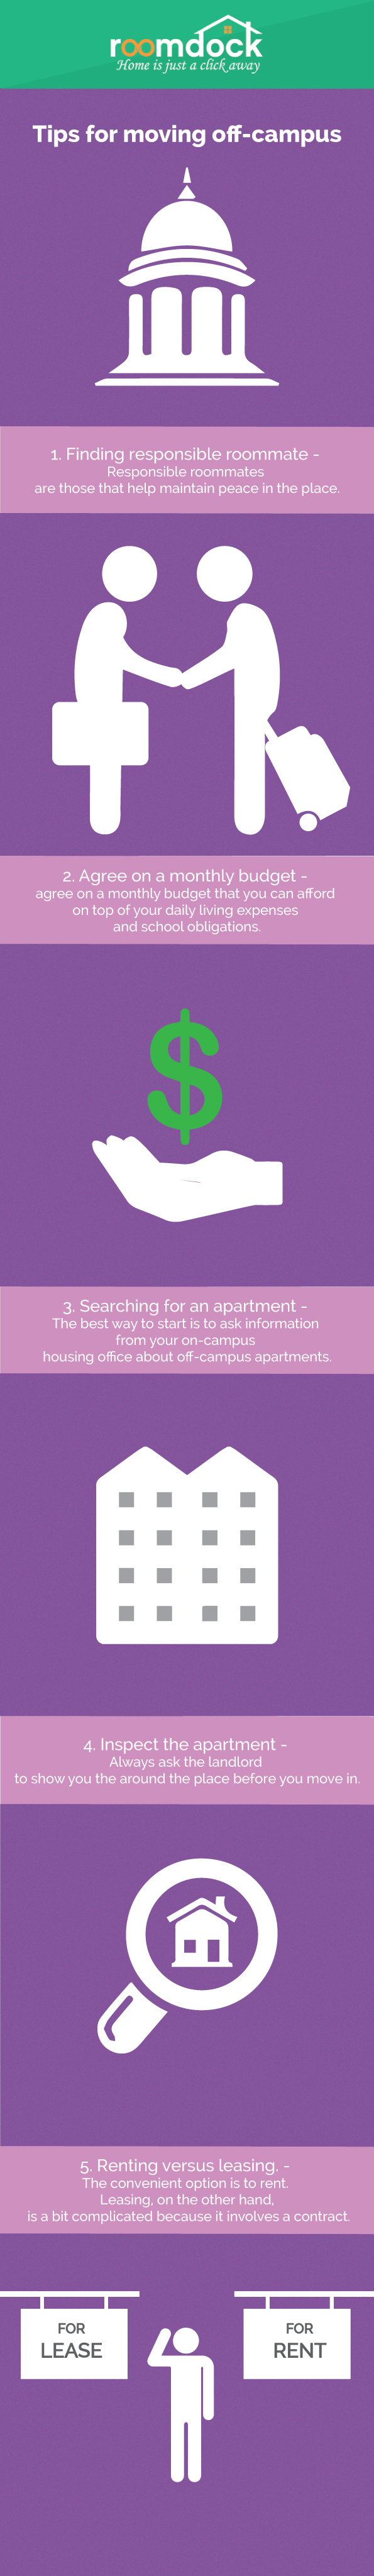 Students move to an off-campus dwelling for a variety of reason, but all of them boils down to the desire of finding a better place to stay. Whether you're tired of keeping up with roommates who refuses to tidy up your place or you want some independence, here are some helpful tips to set you on your journey to finding a better dwelling place.